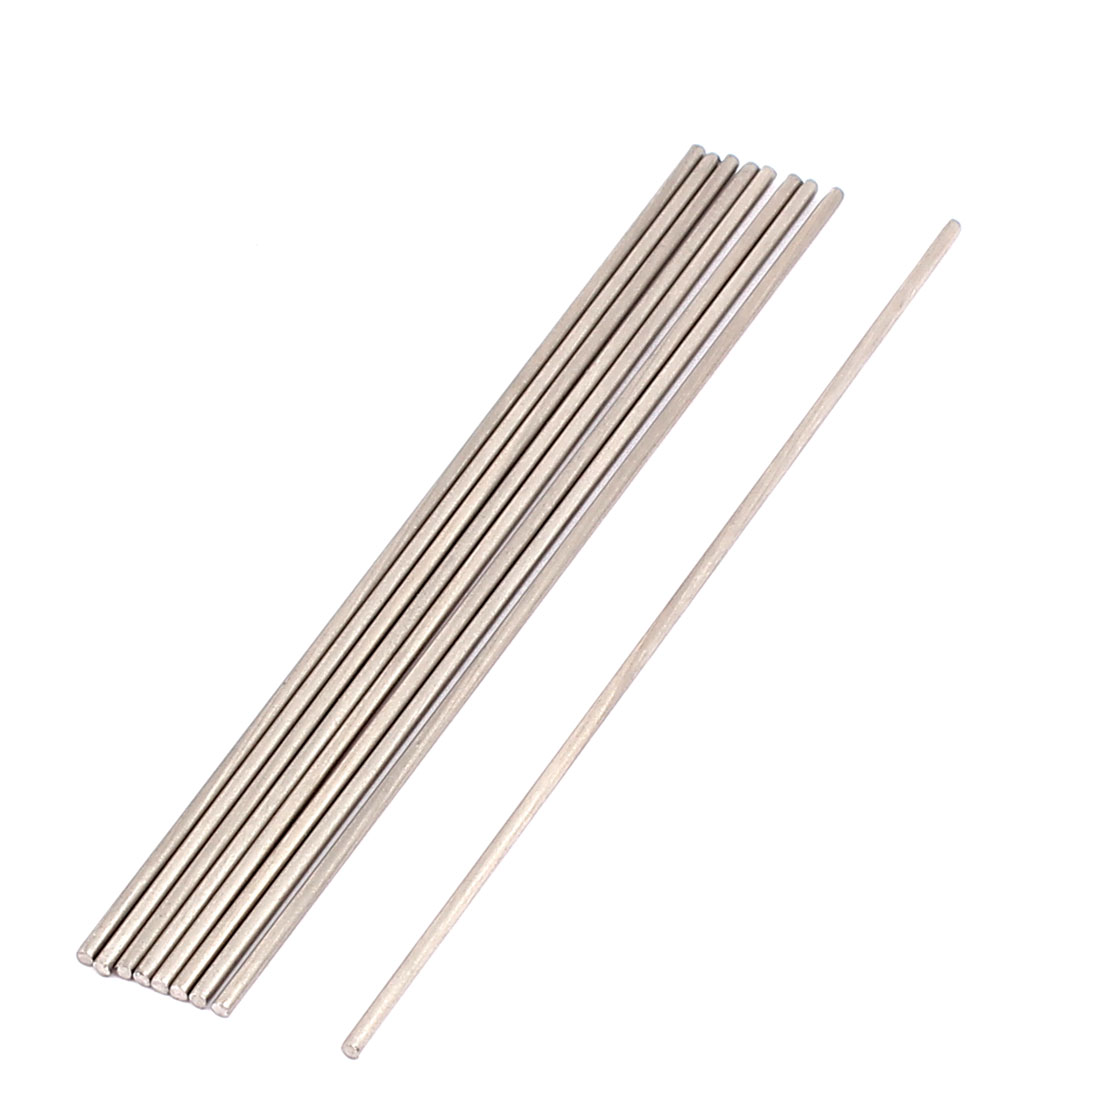 RC Airplane Car Part Stainless Steel Round Rods 1.5mm x 100mm 10 Pcs